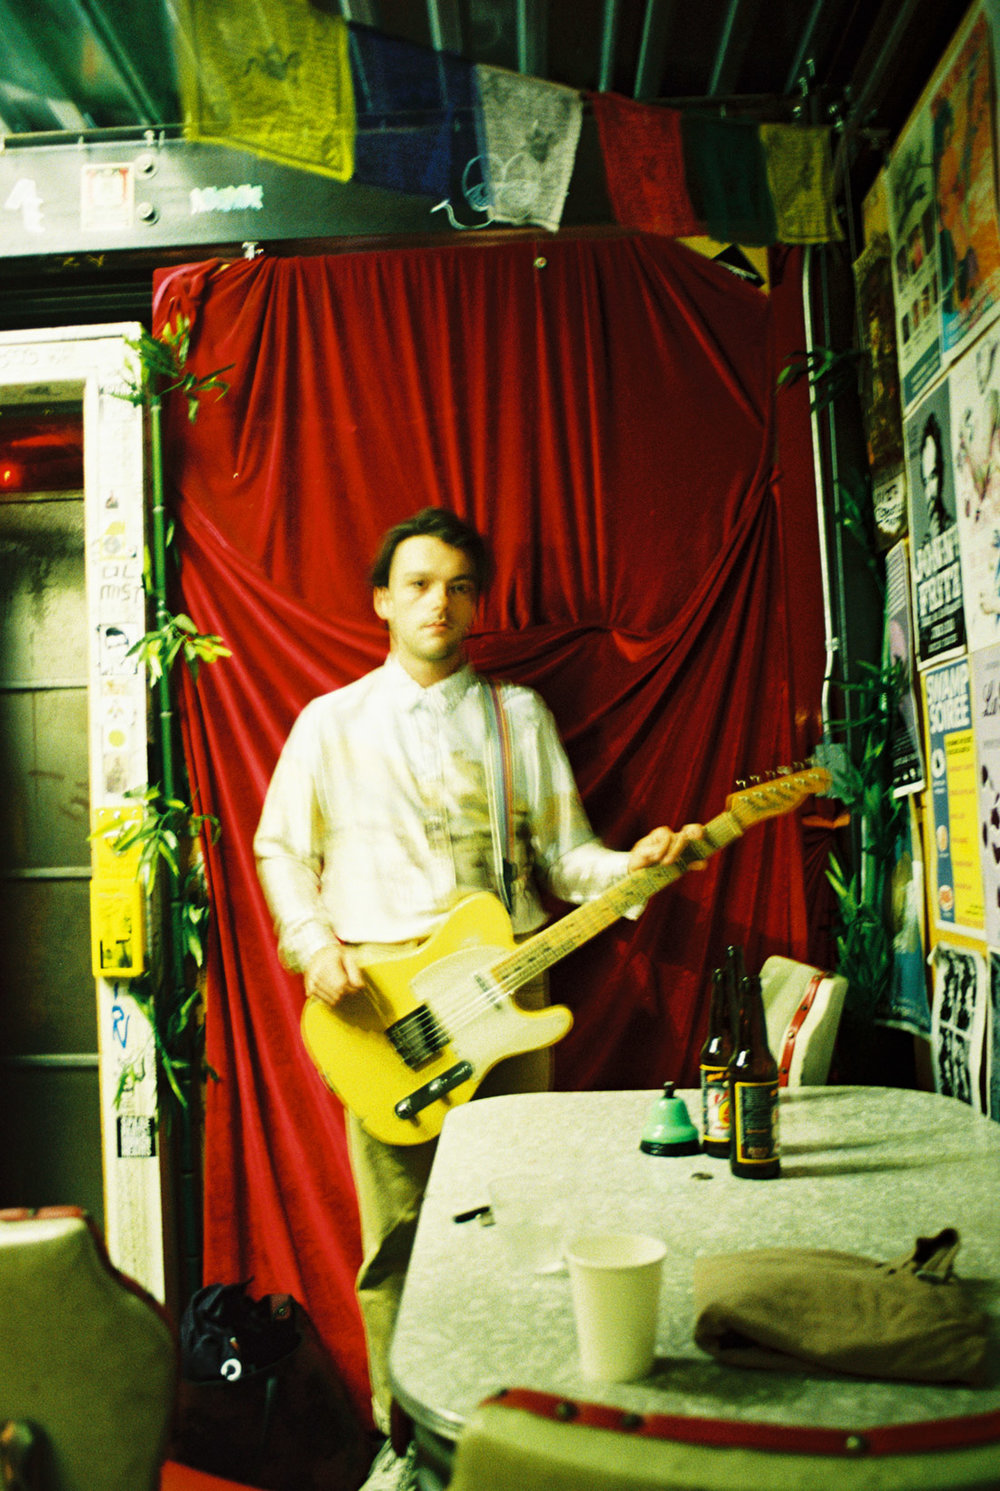 Garrett backstage at Bootleg